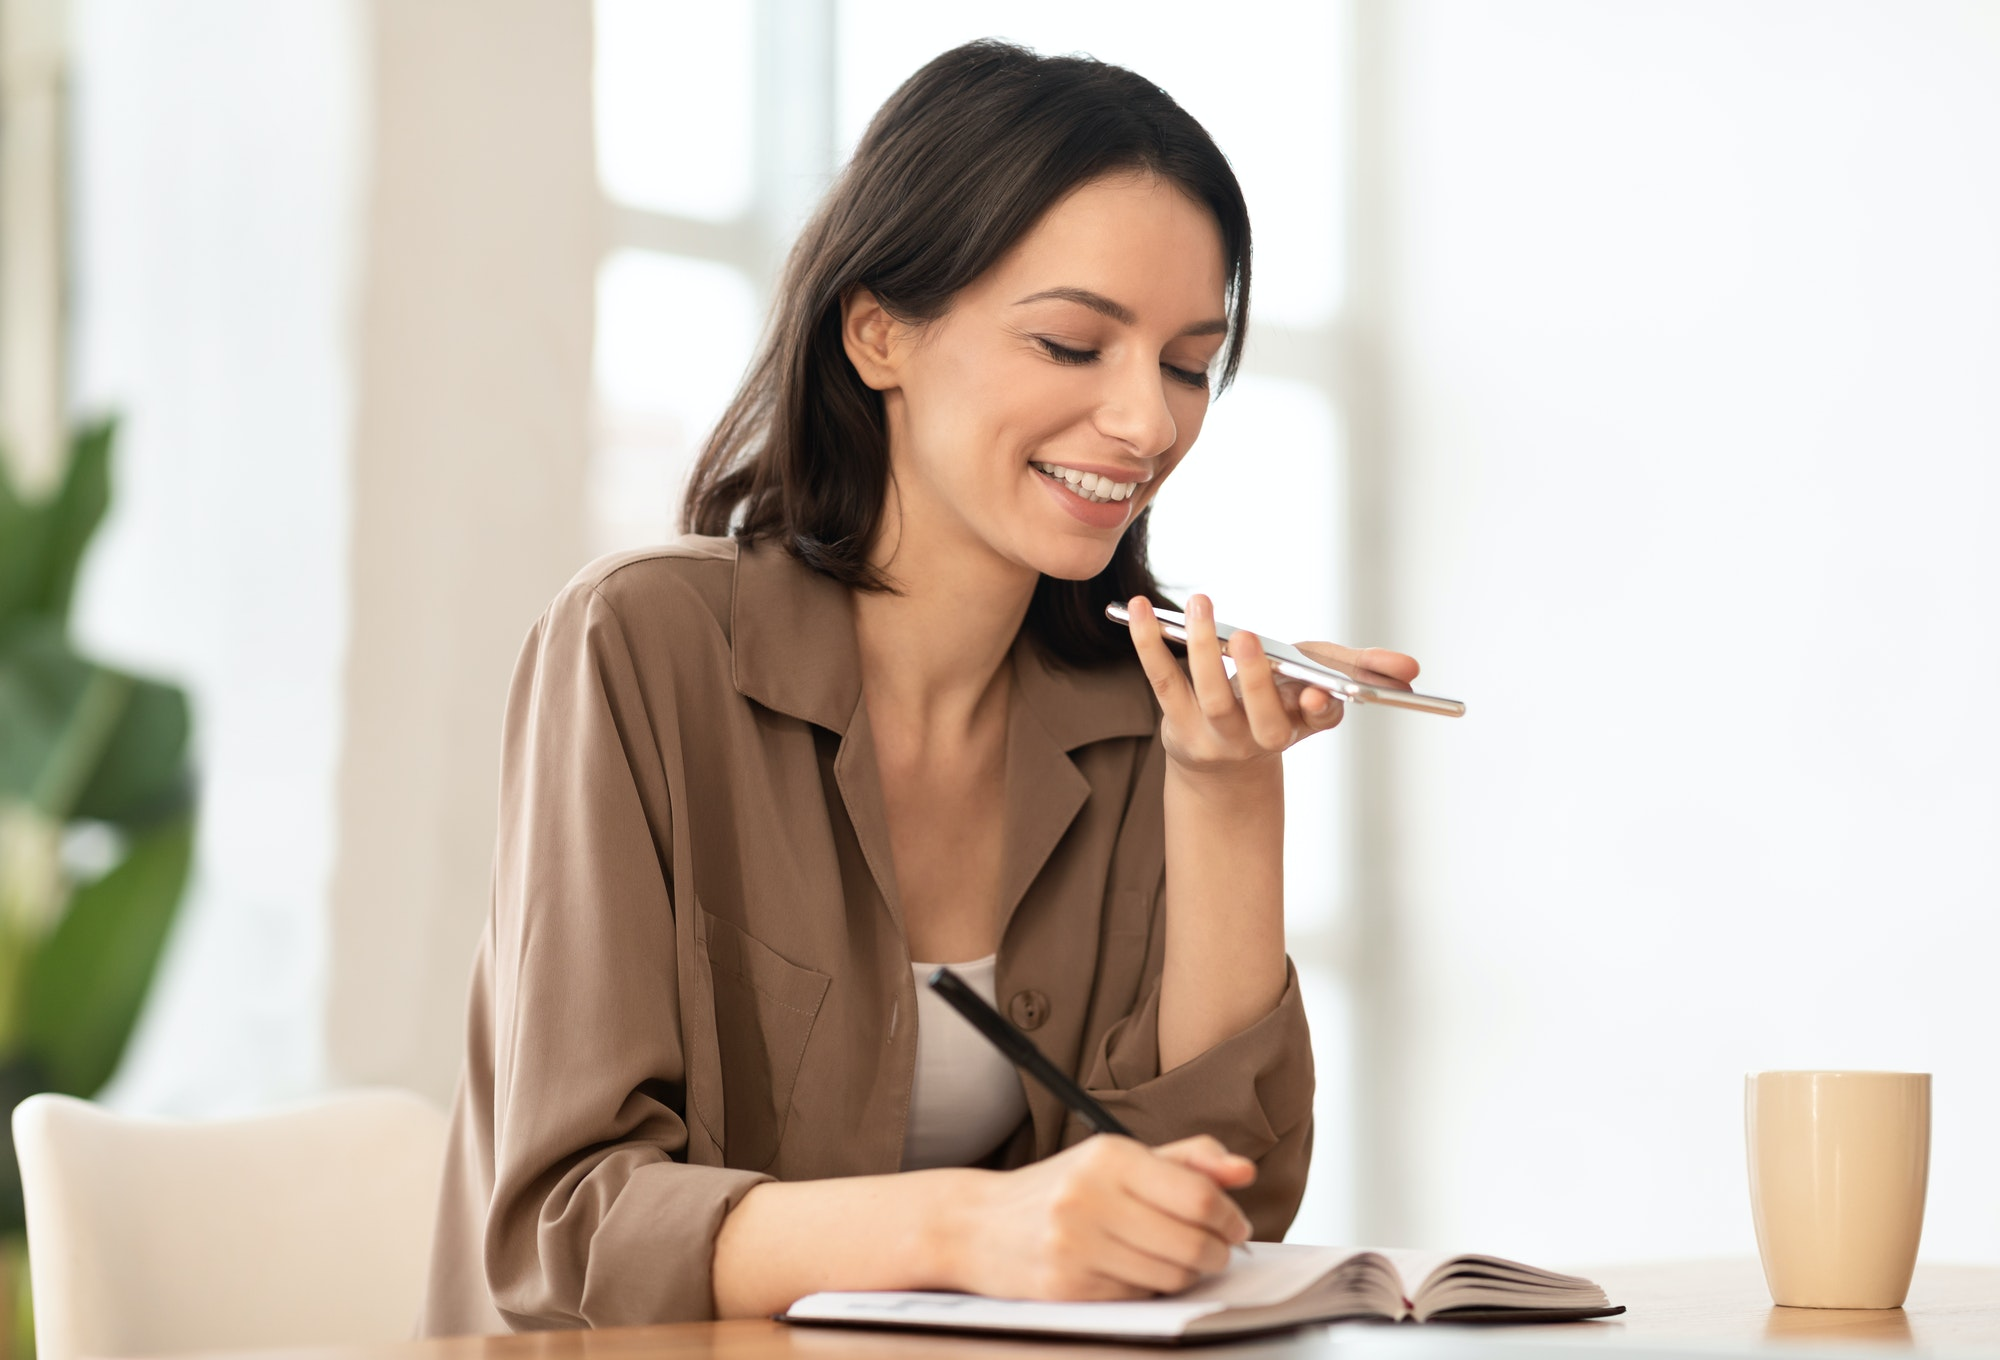 Woman using mobile voice recognition function and writing